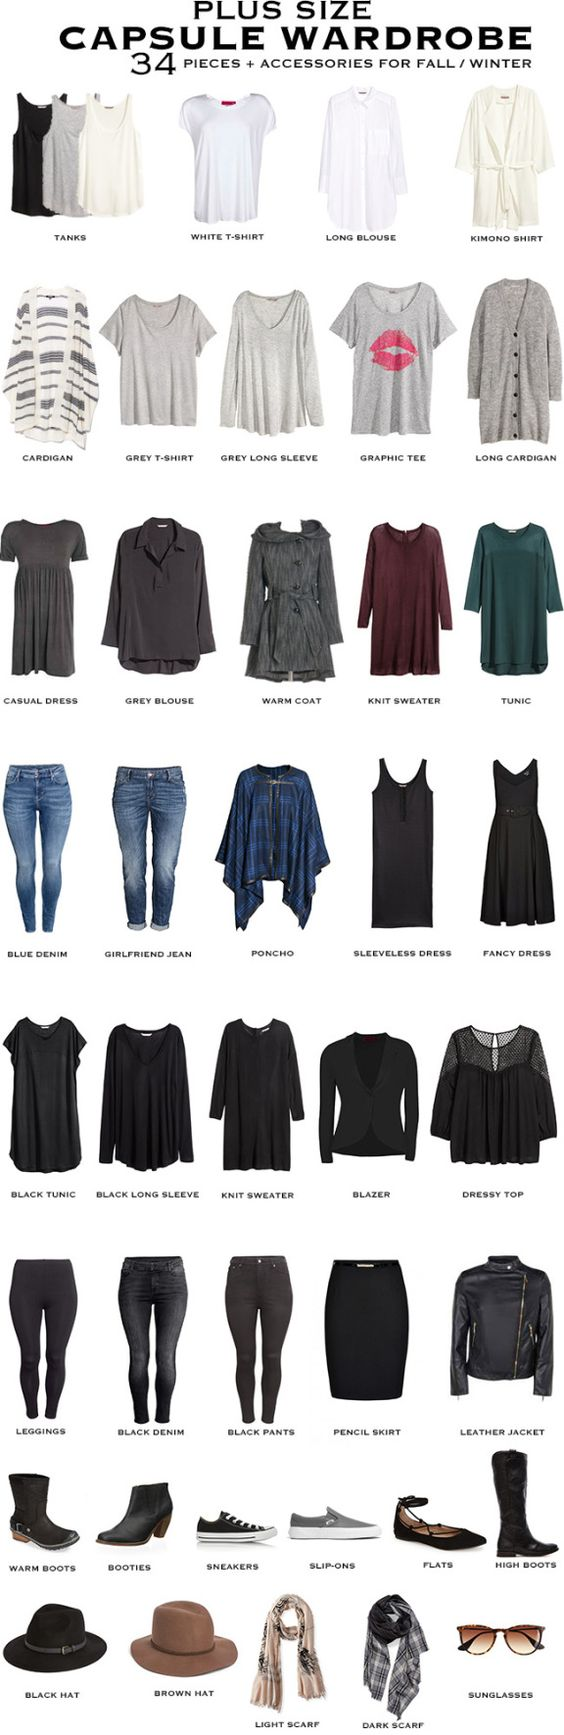 Plus Size Capsule Wardrobe for Fall/Winter: